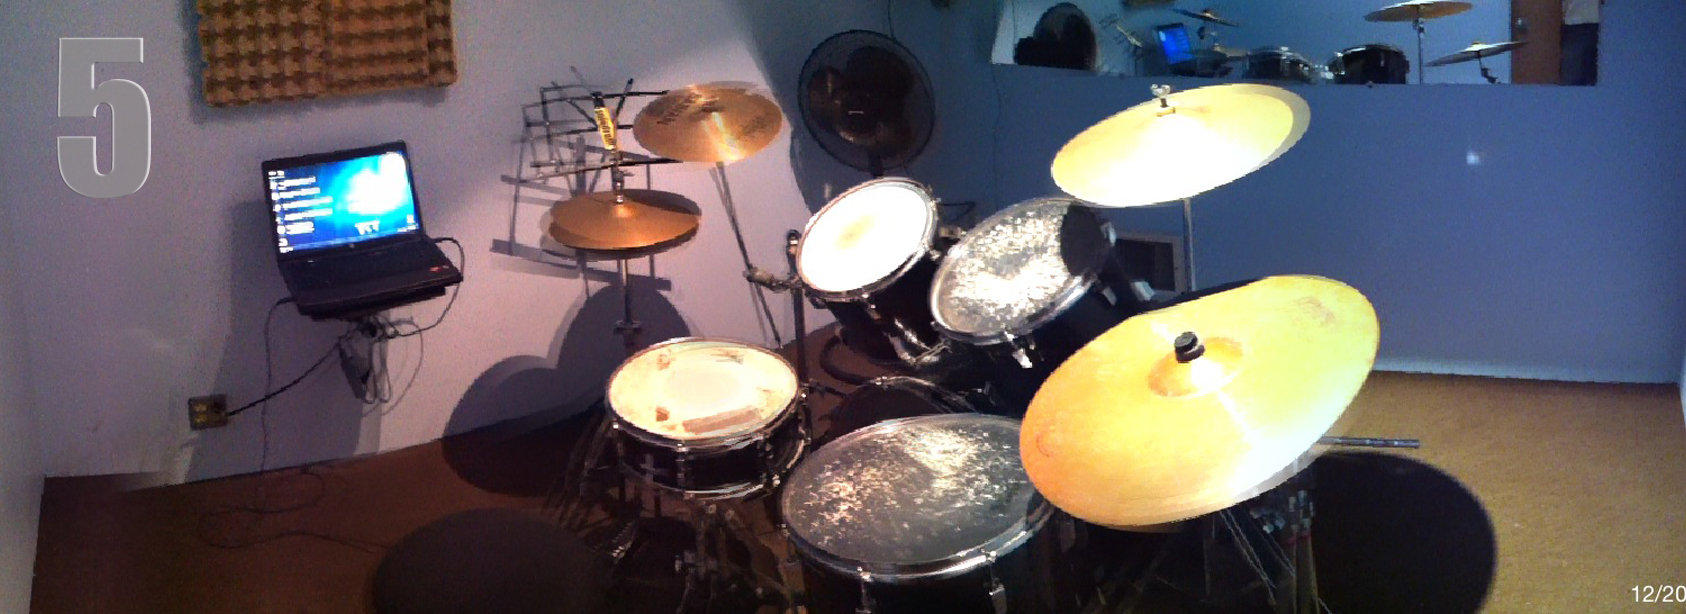 (10' x 10') drum set and a laptop. Cymbals included